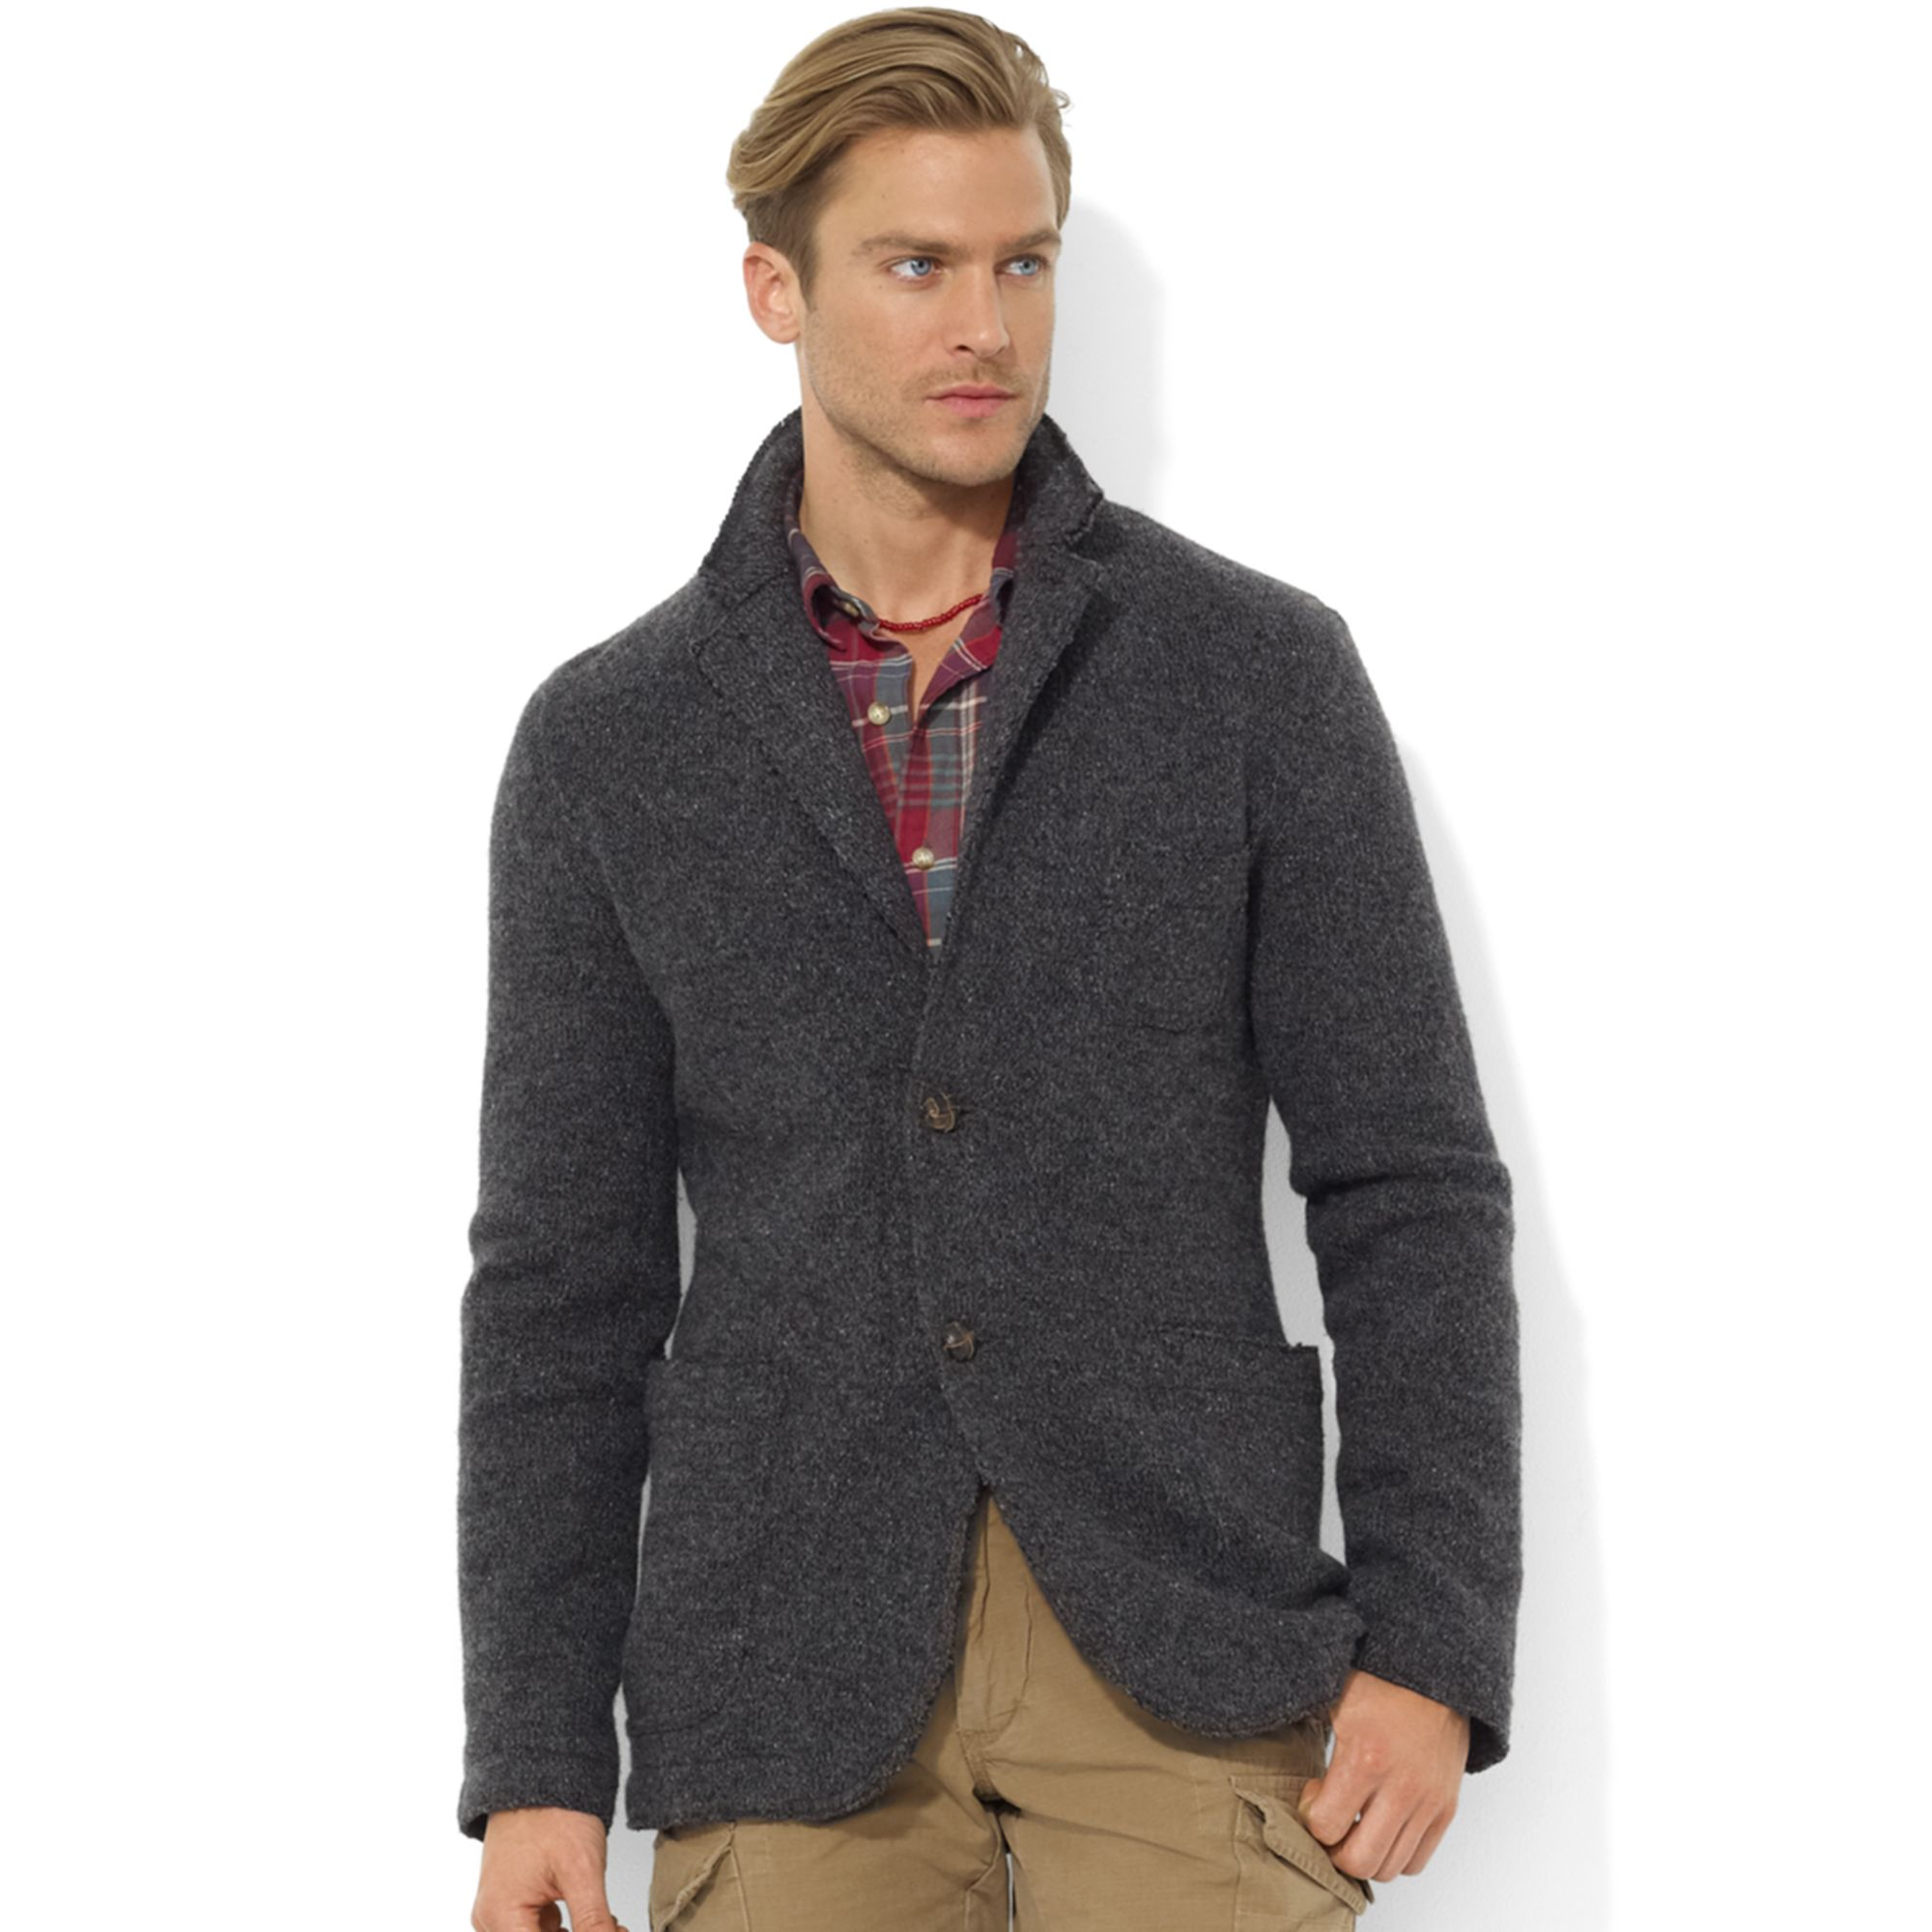 ralph lauren two button marled wool blazer in gray for men lyst. Black Bedroom Furniture Sets. Home Design Ideas